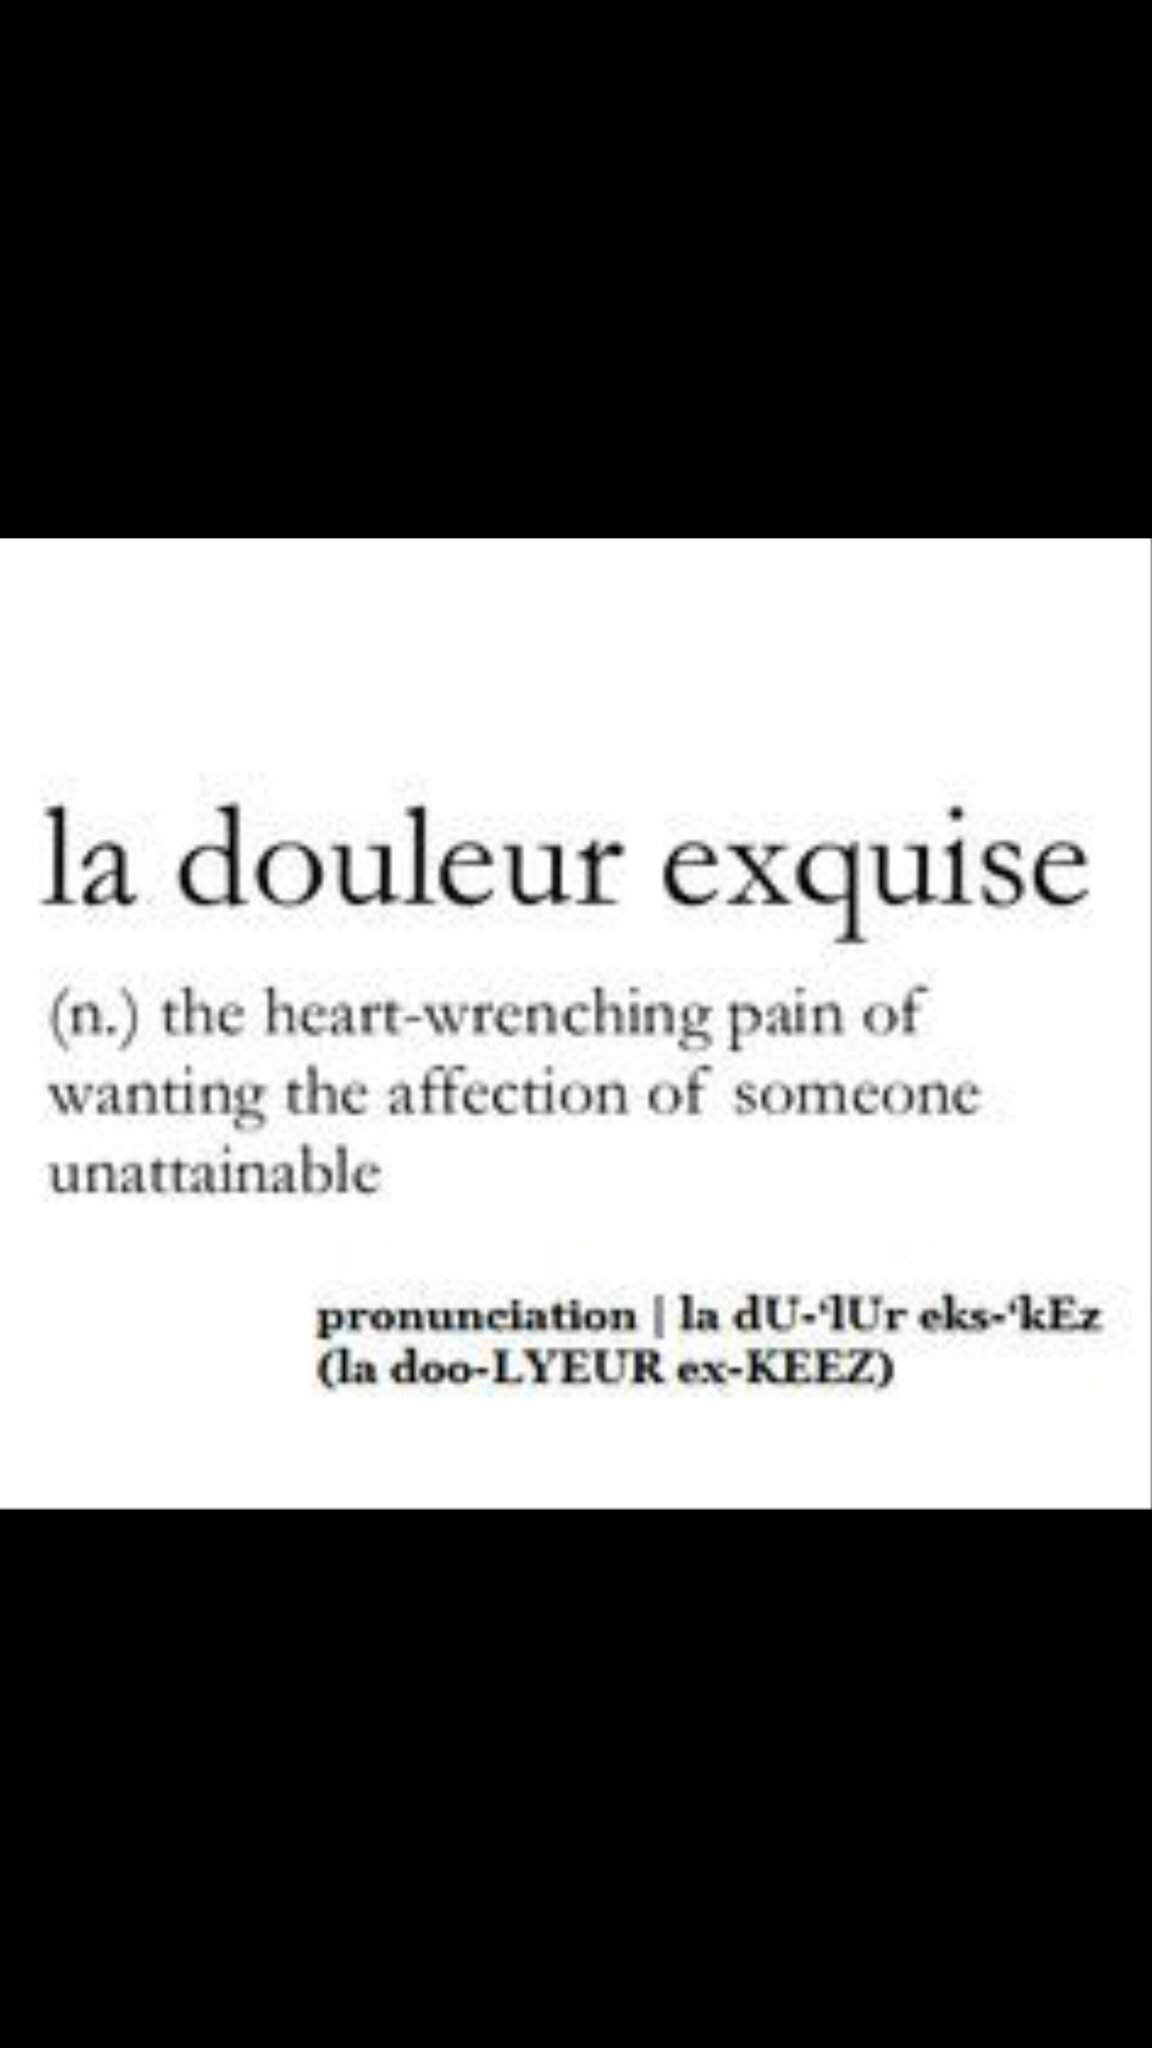 La douleur exquise | Dating Amino